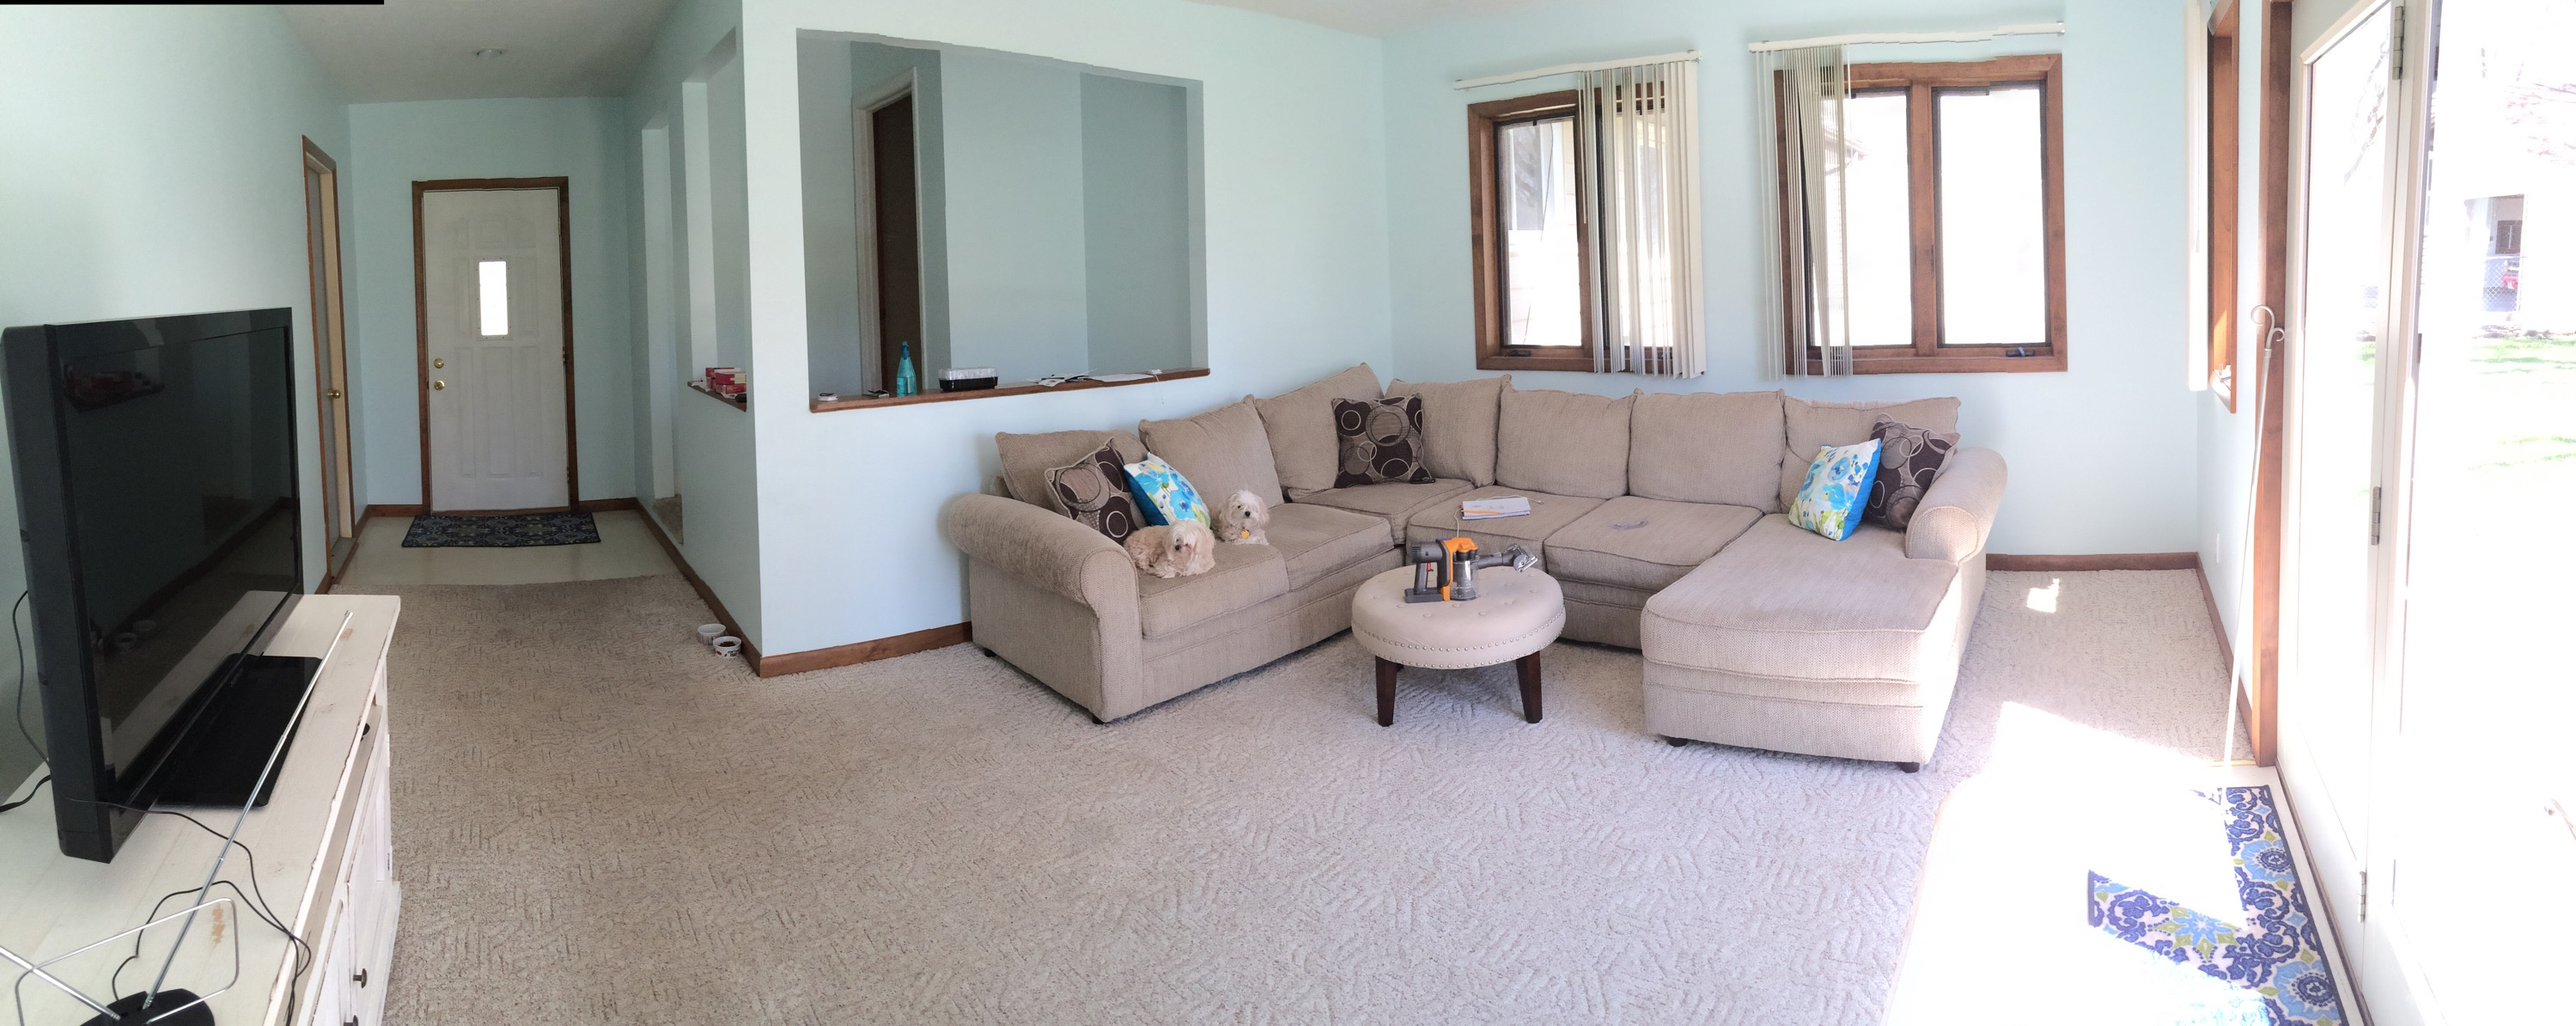 decluttered family room